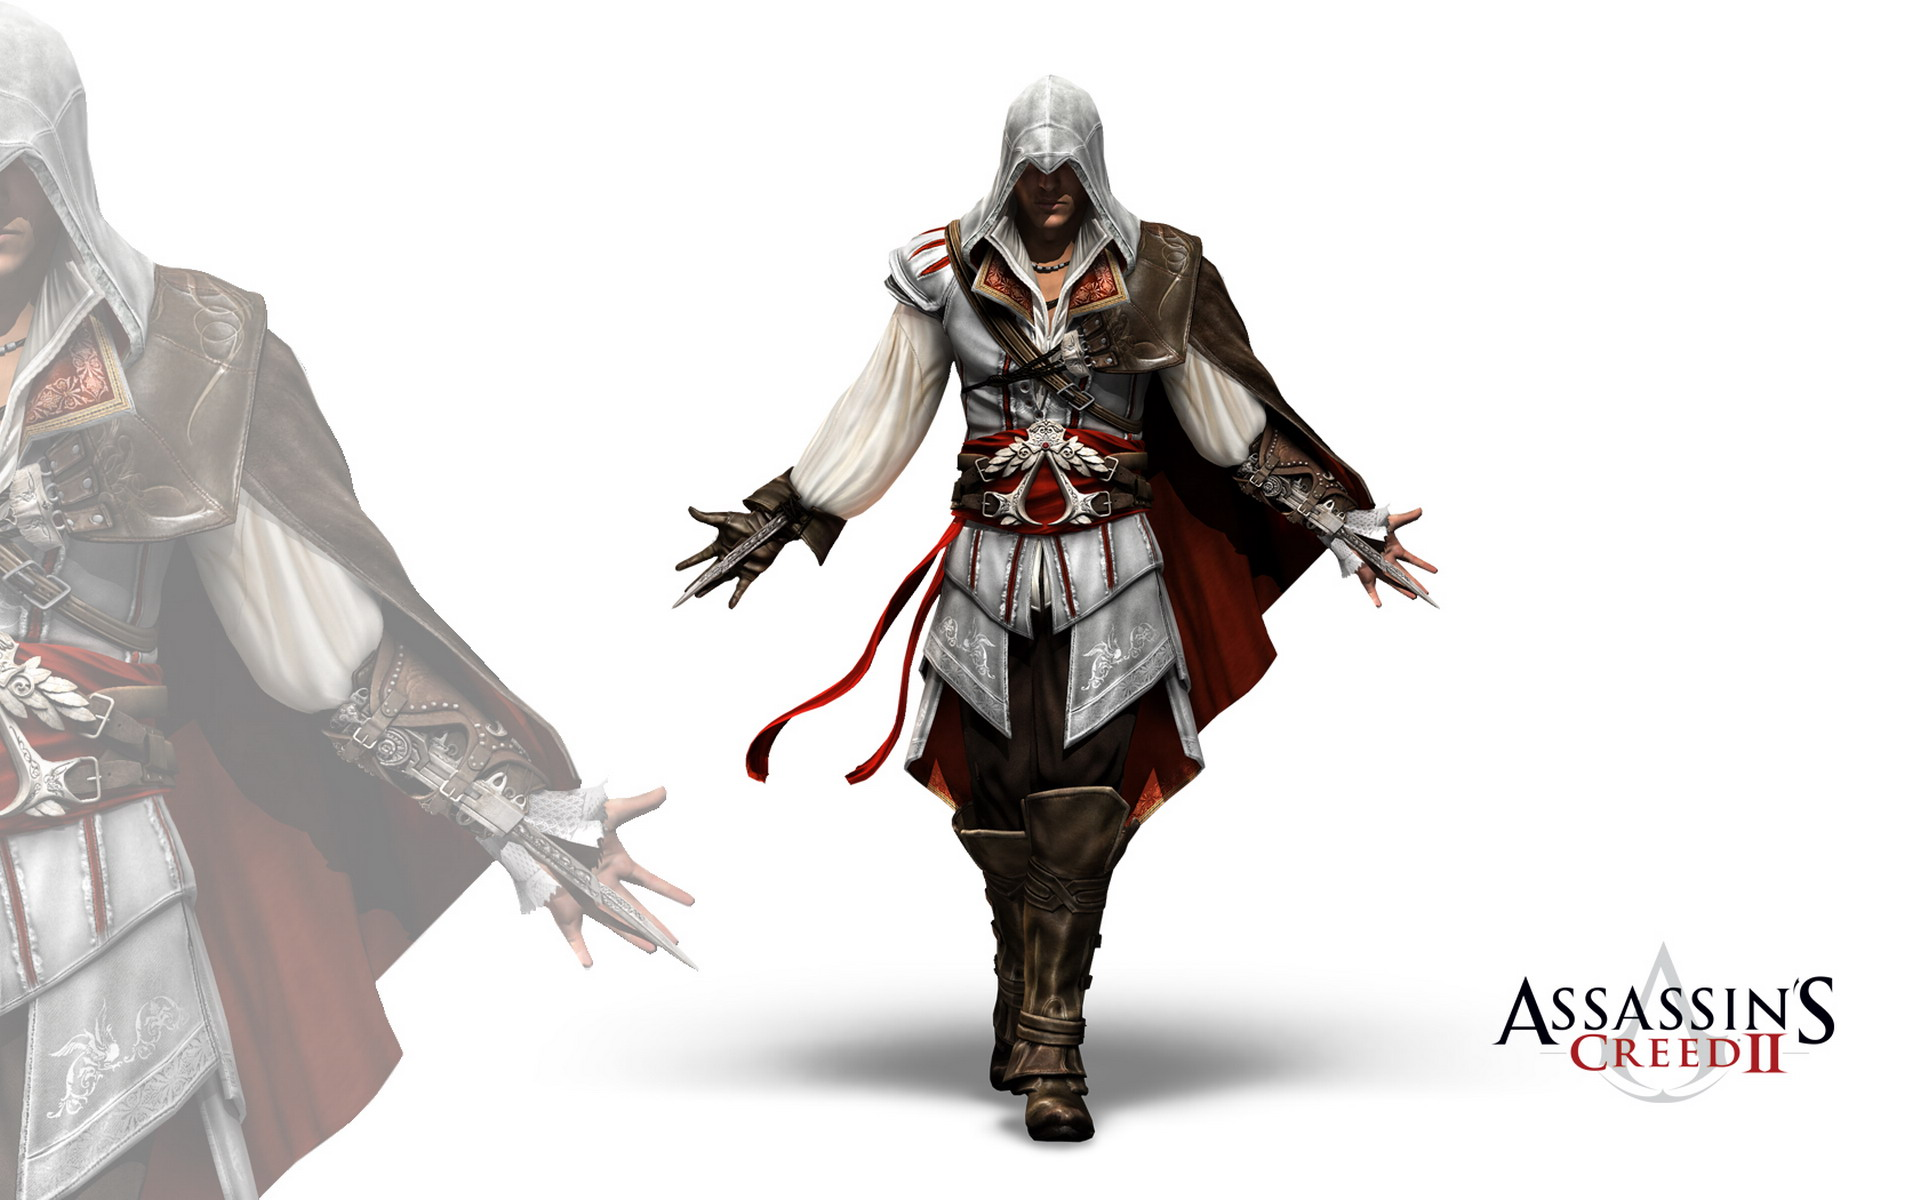 Assassins Creed II Wallpapers HD Wallpapers 1920x1200